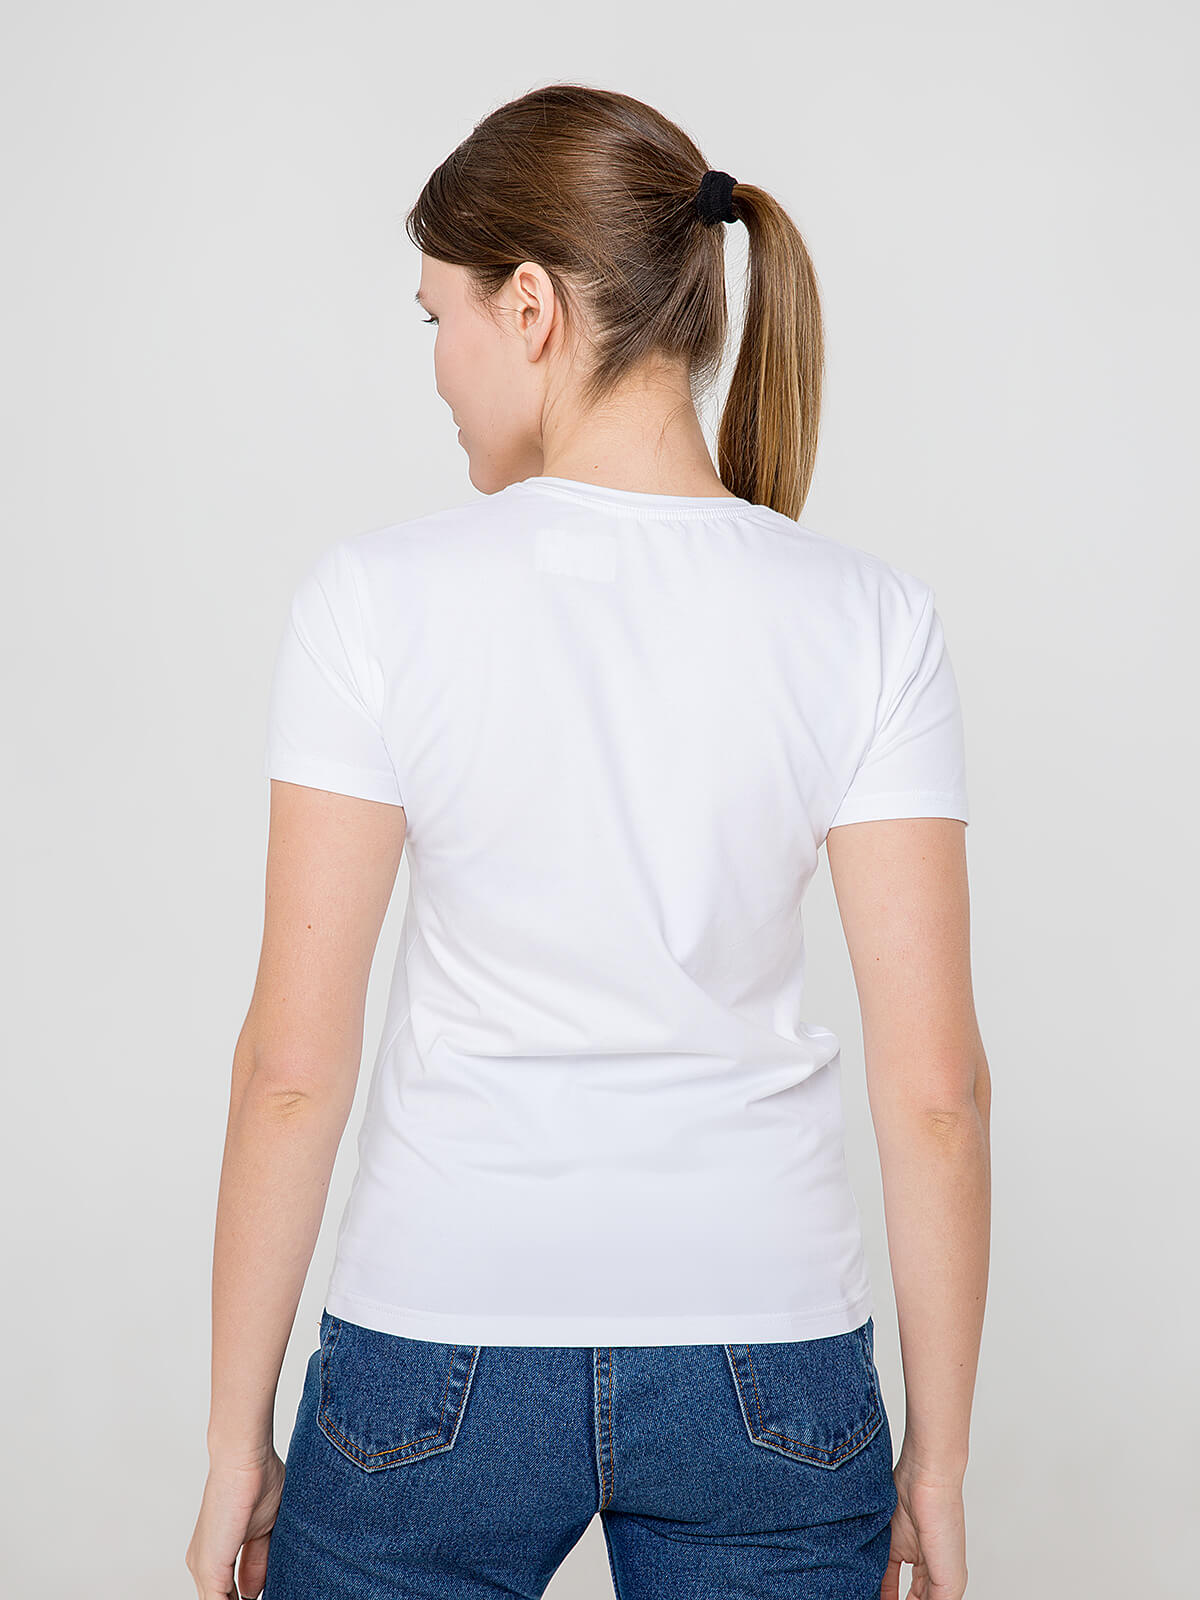 Women's T-Shirt Eagle. Color white.  Don't worry about the universal size.